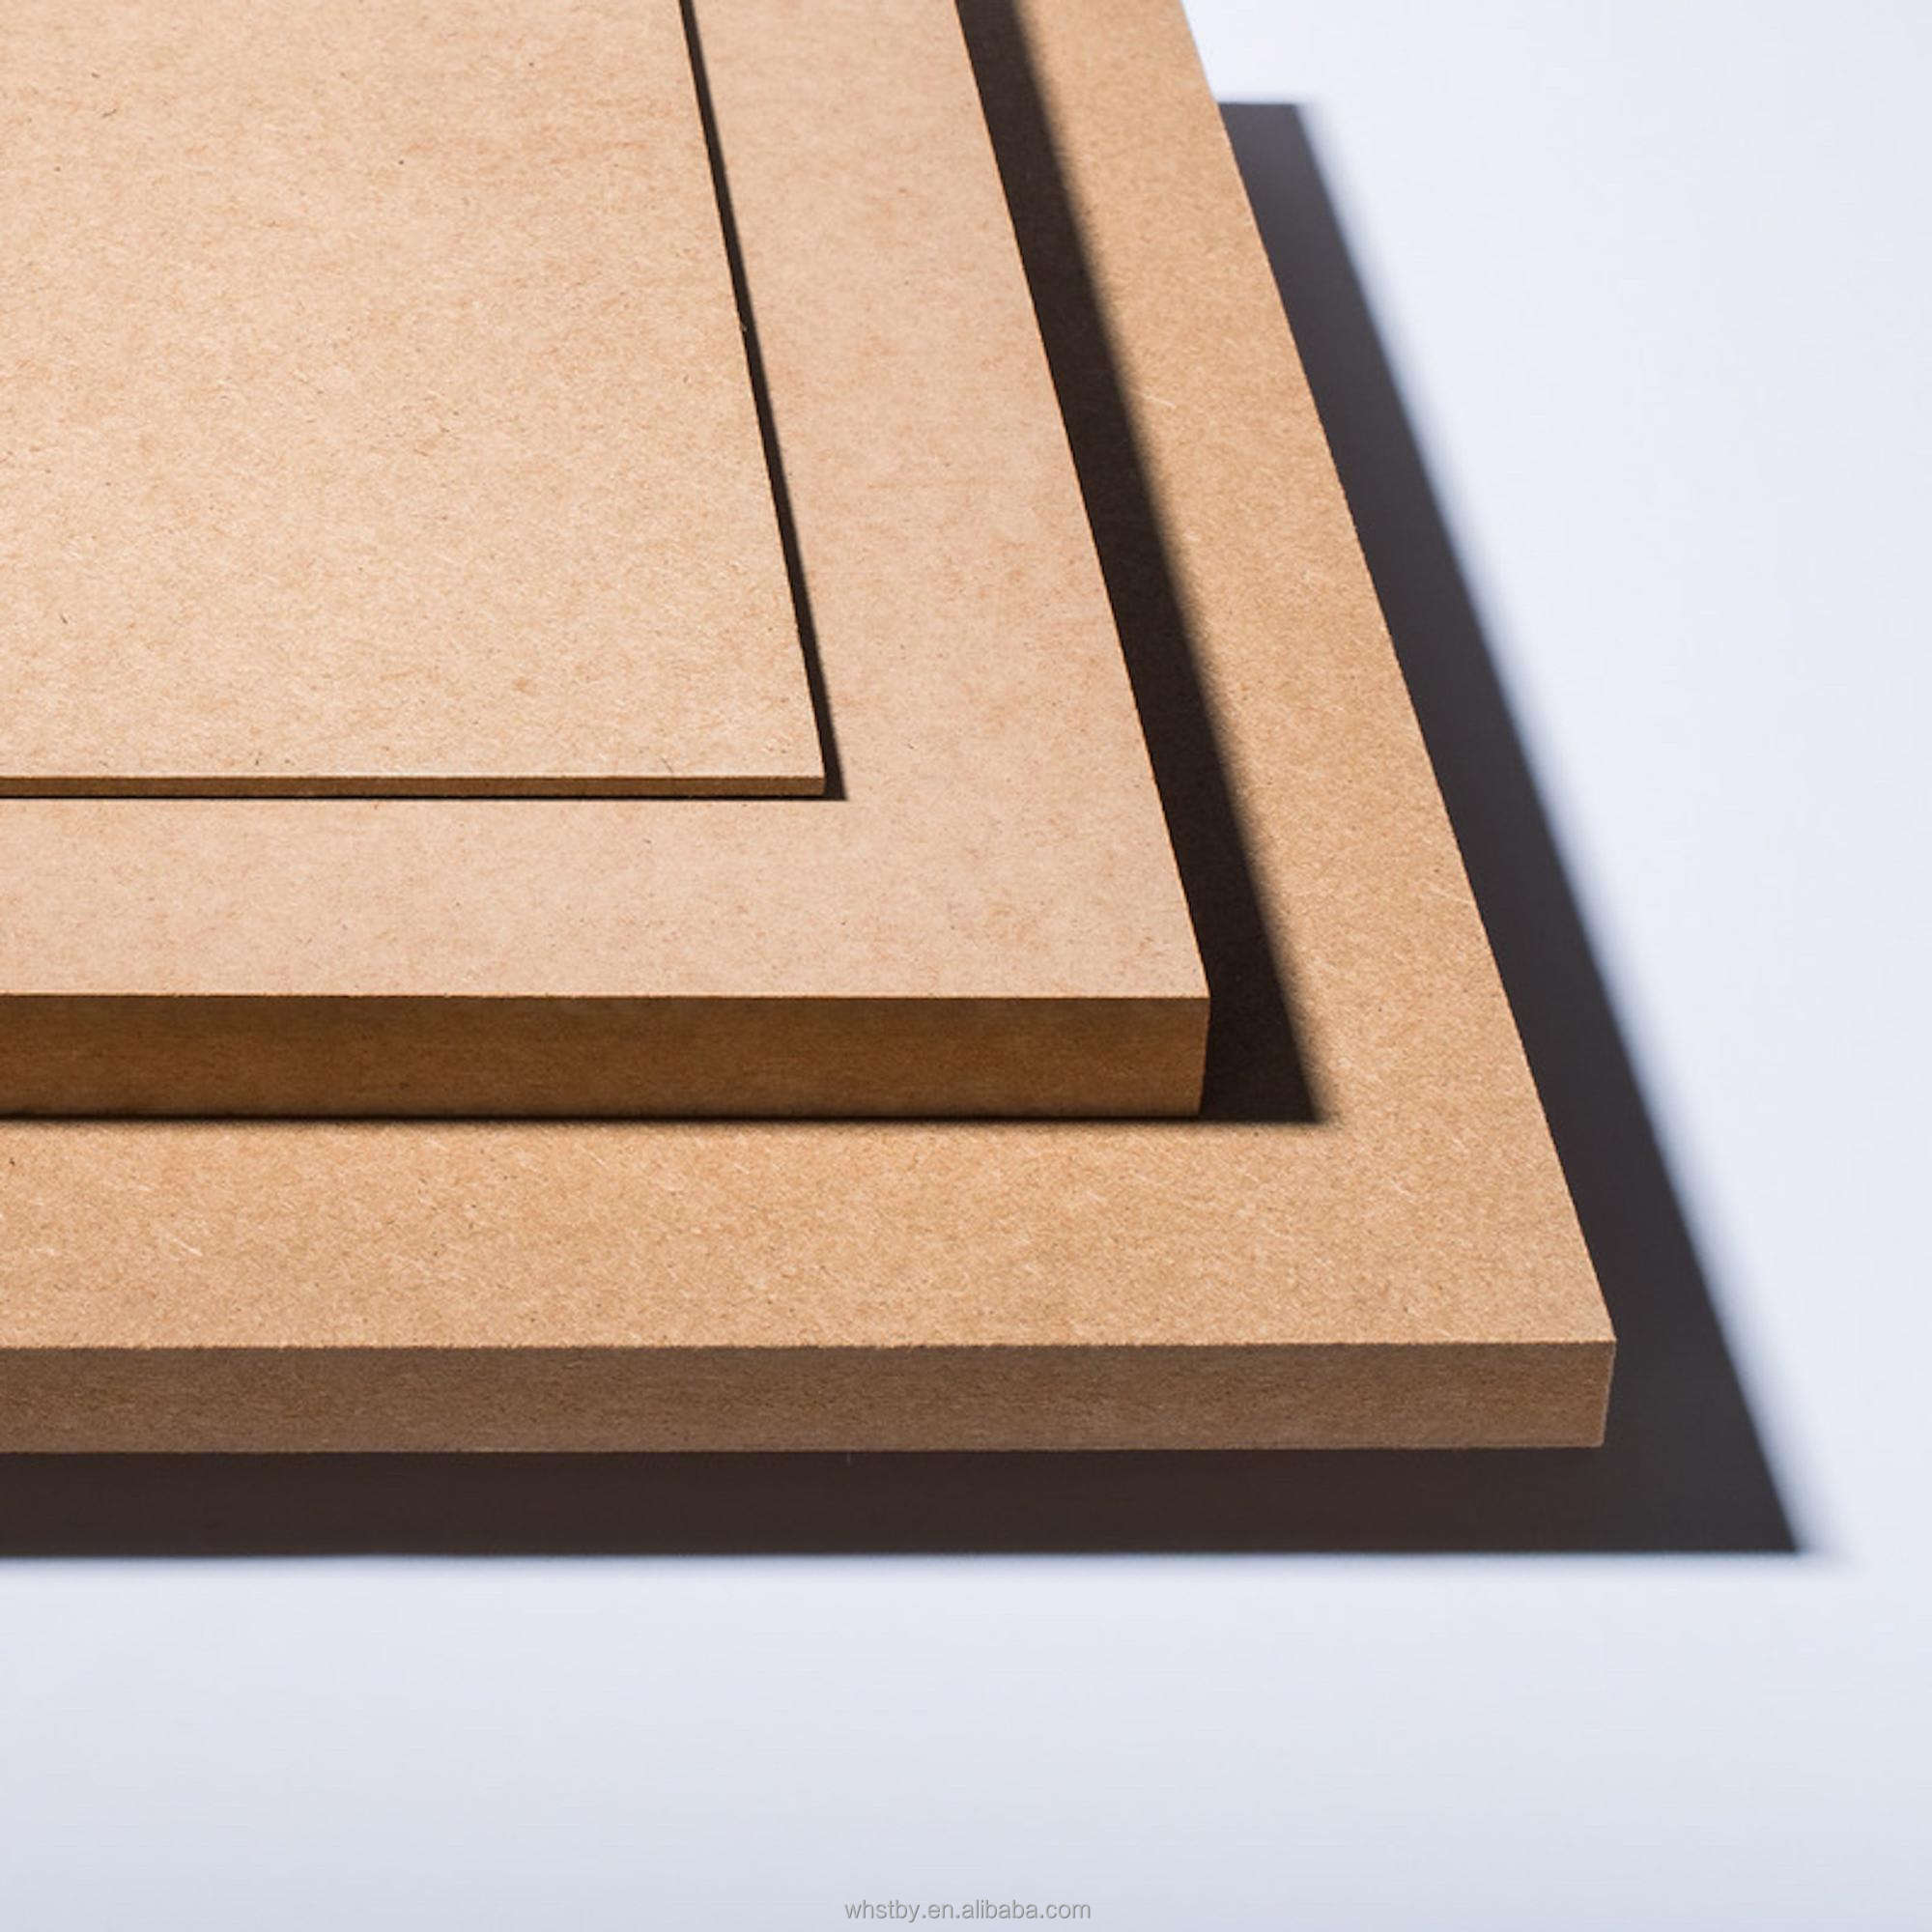 Carb mdf naf sublimatie. Mdf board sublimatie